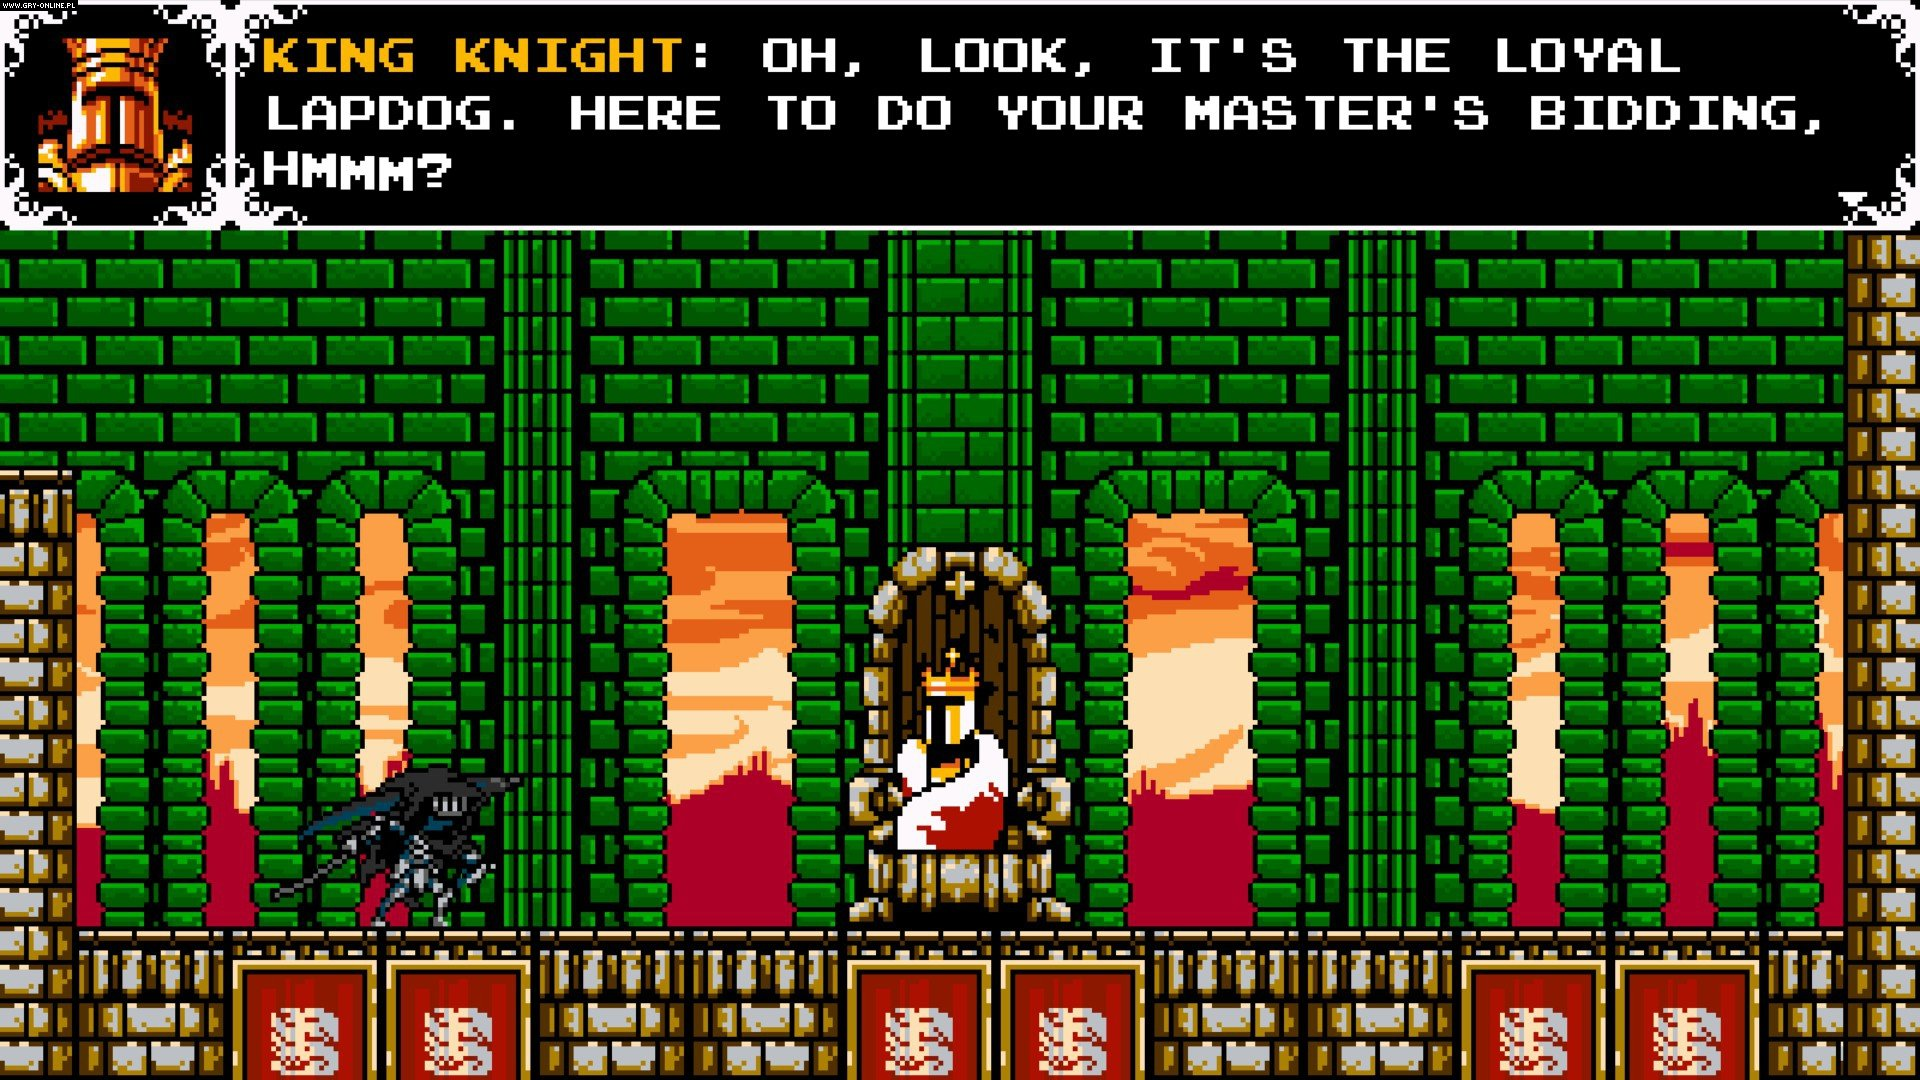 Shovel Knight: Specter of Torment PC, PS3, 3DS, PSV, WiiU, PS4, XONE, Switch Games Image 17/17, Yacht Club Games